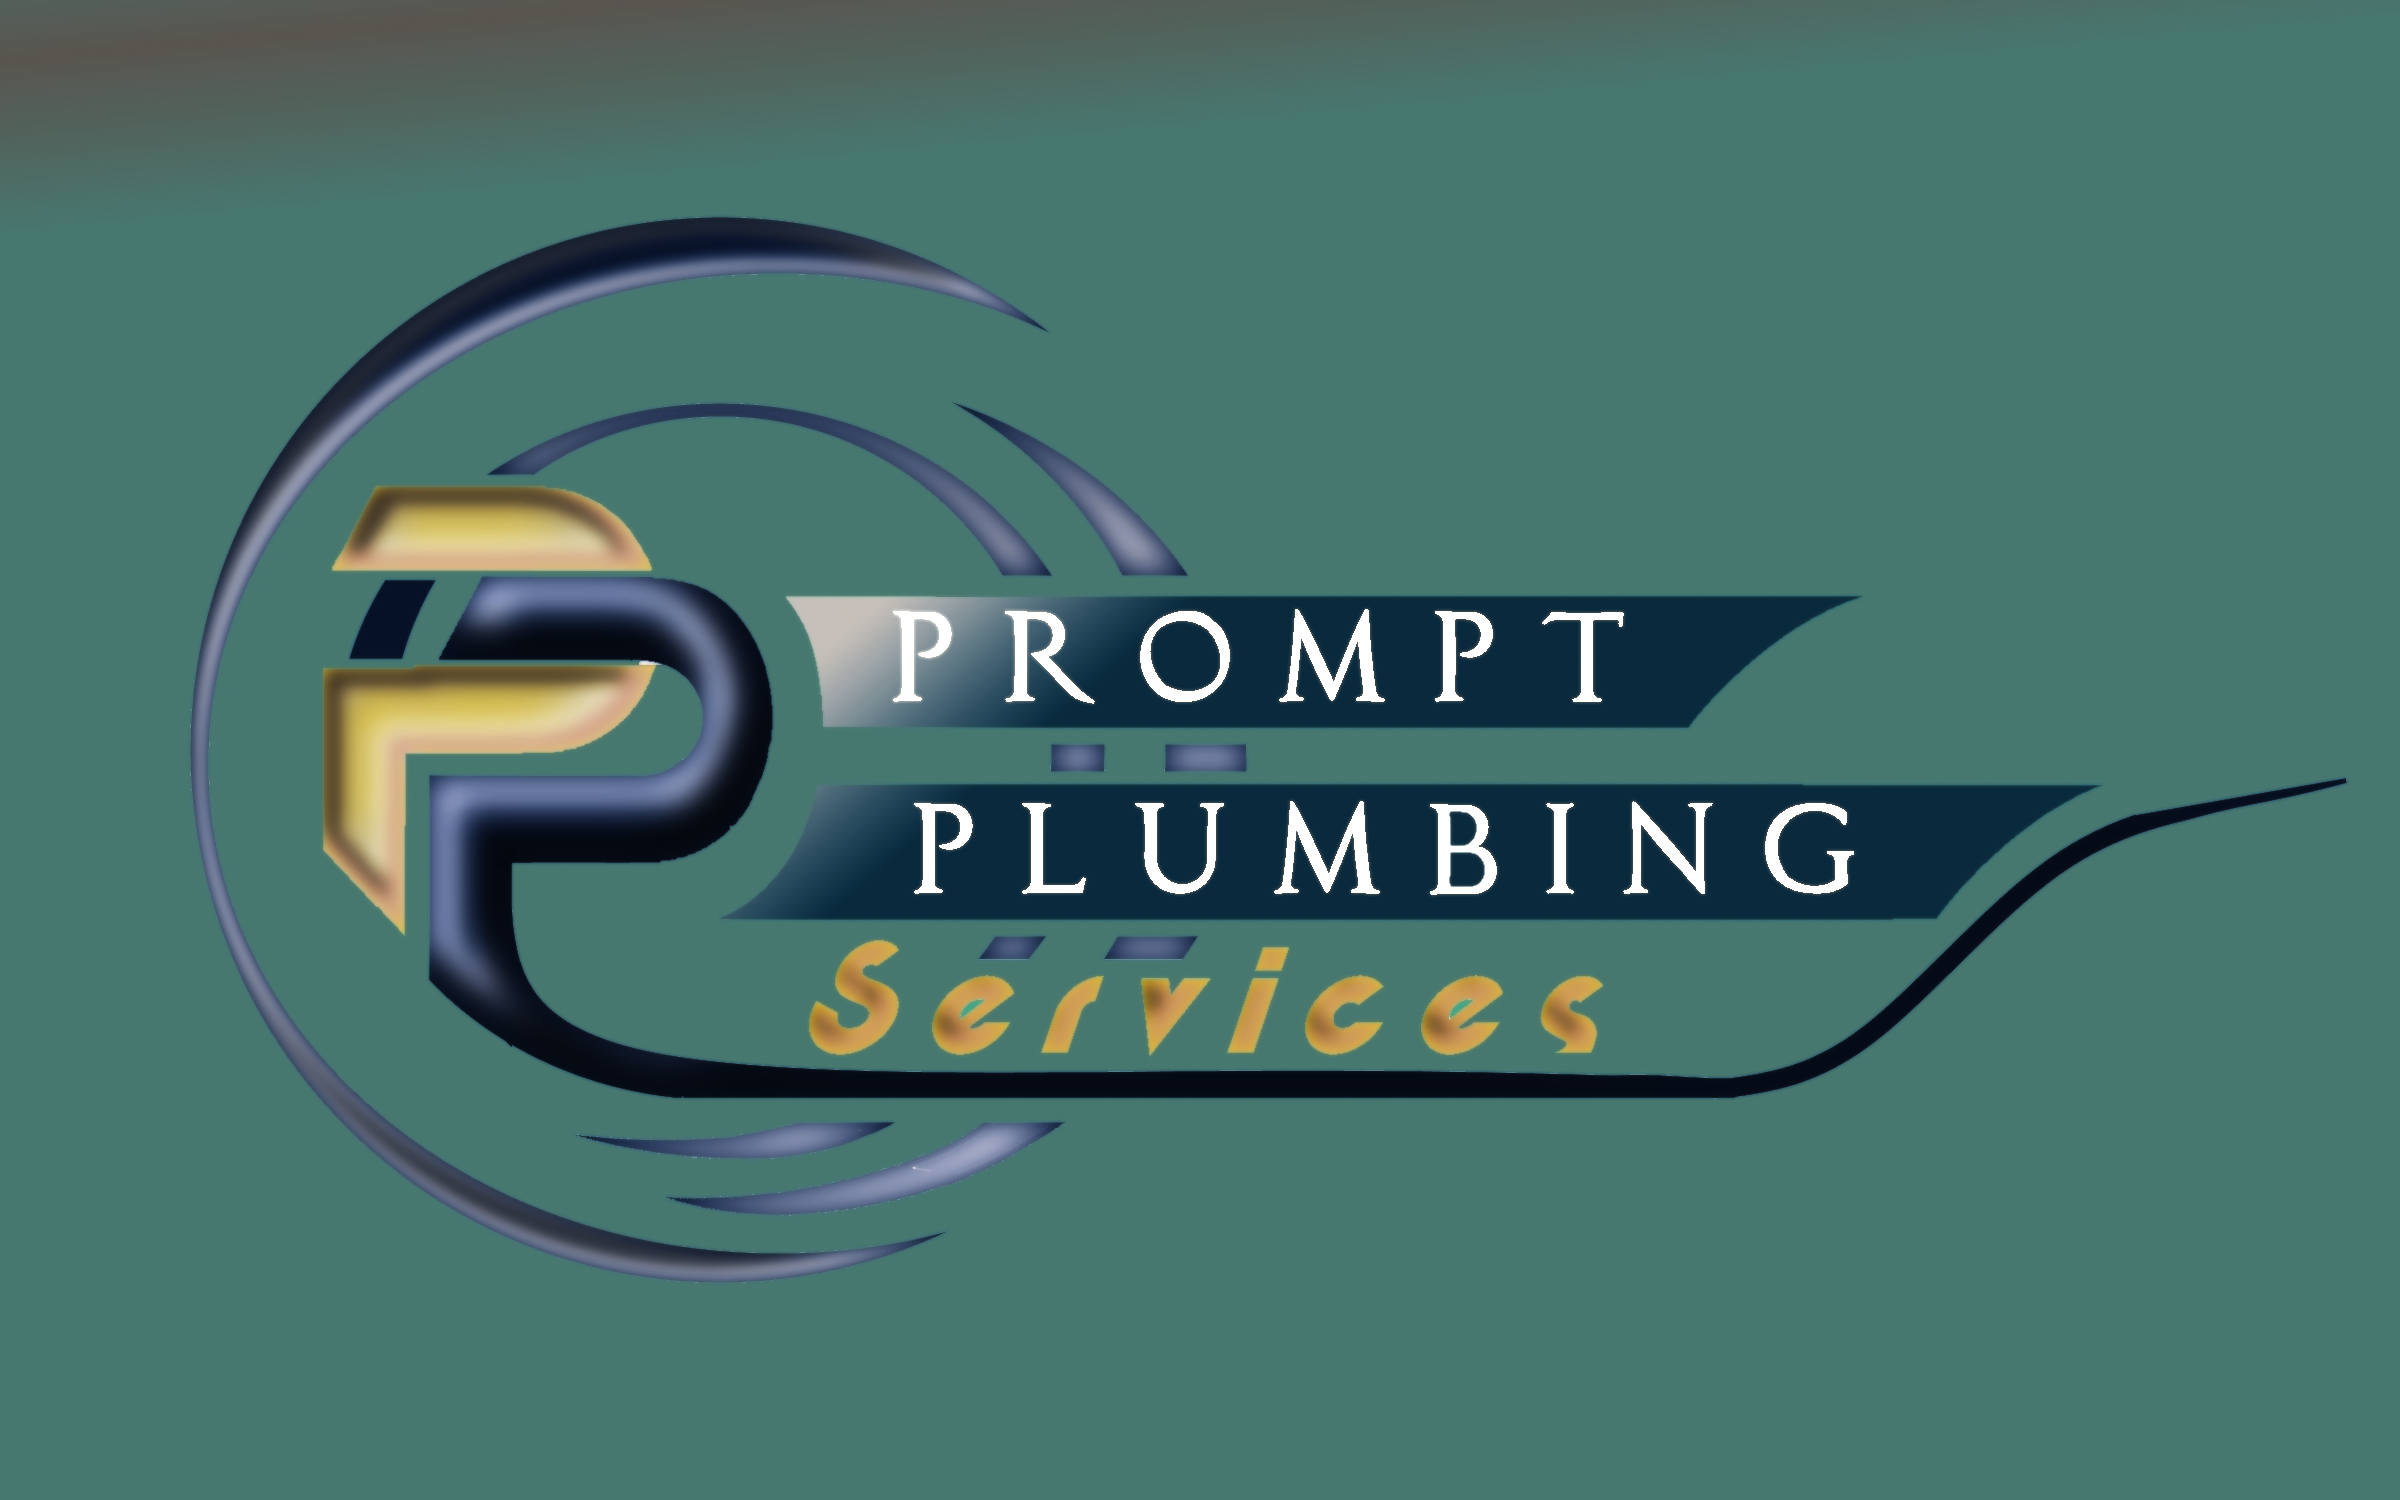 Logo Design by Roberto Bassi - Entry No. 55 in the Logo Design Contest Artistic Logo Design for Prompt Plumbing Services.